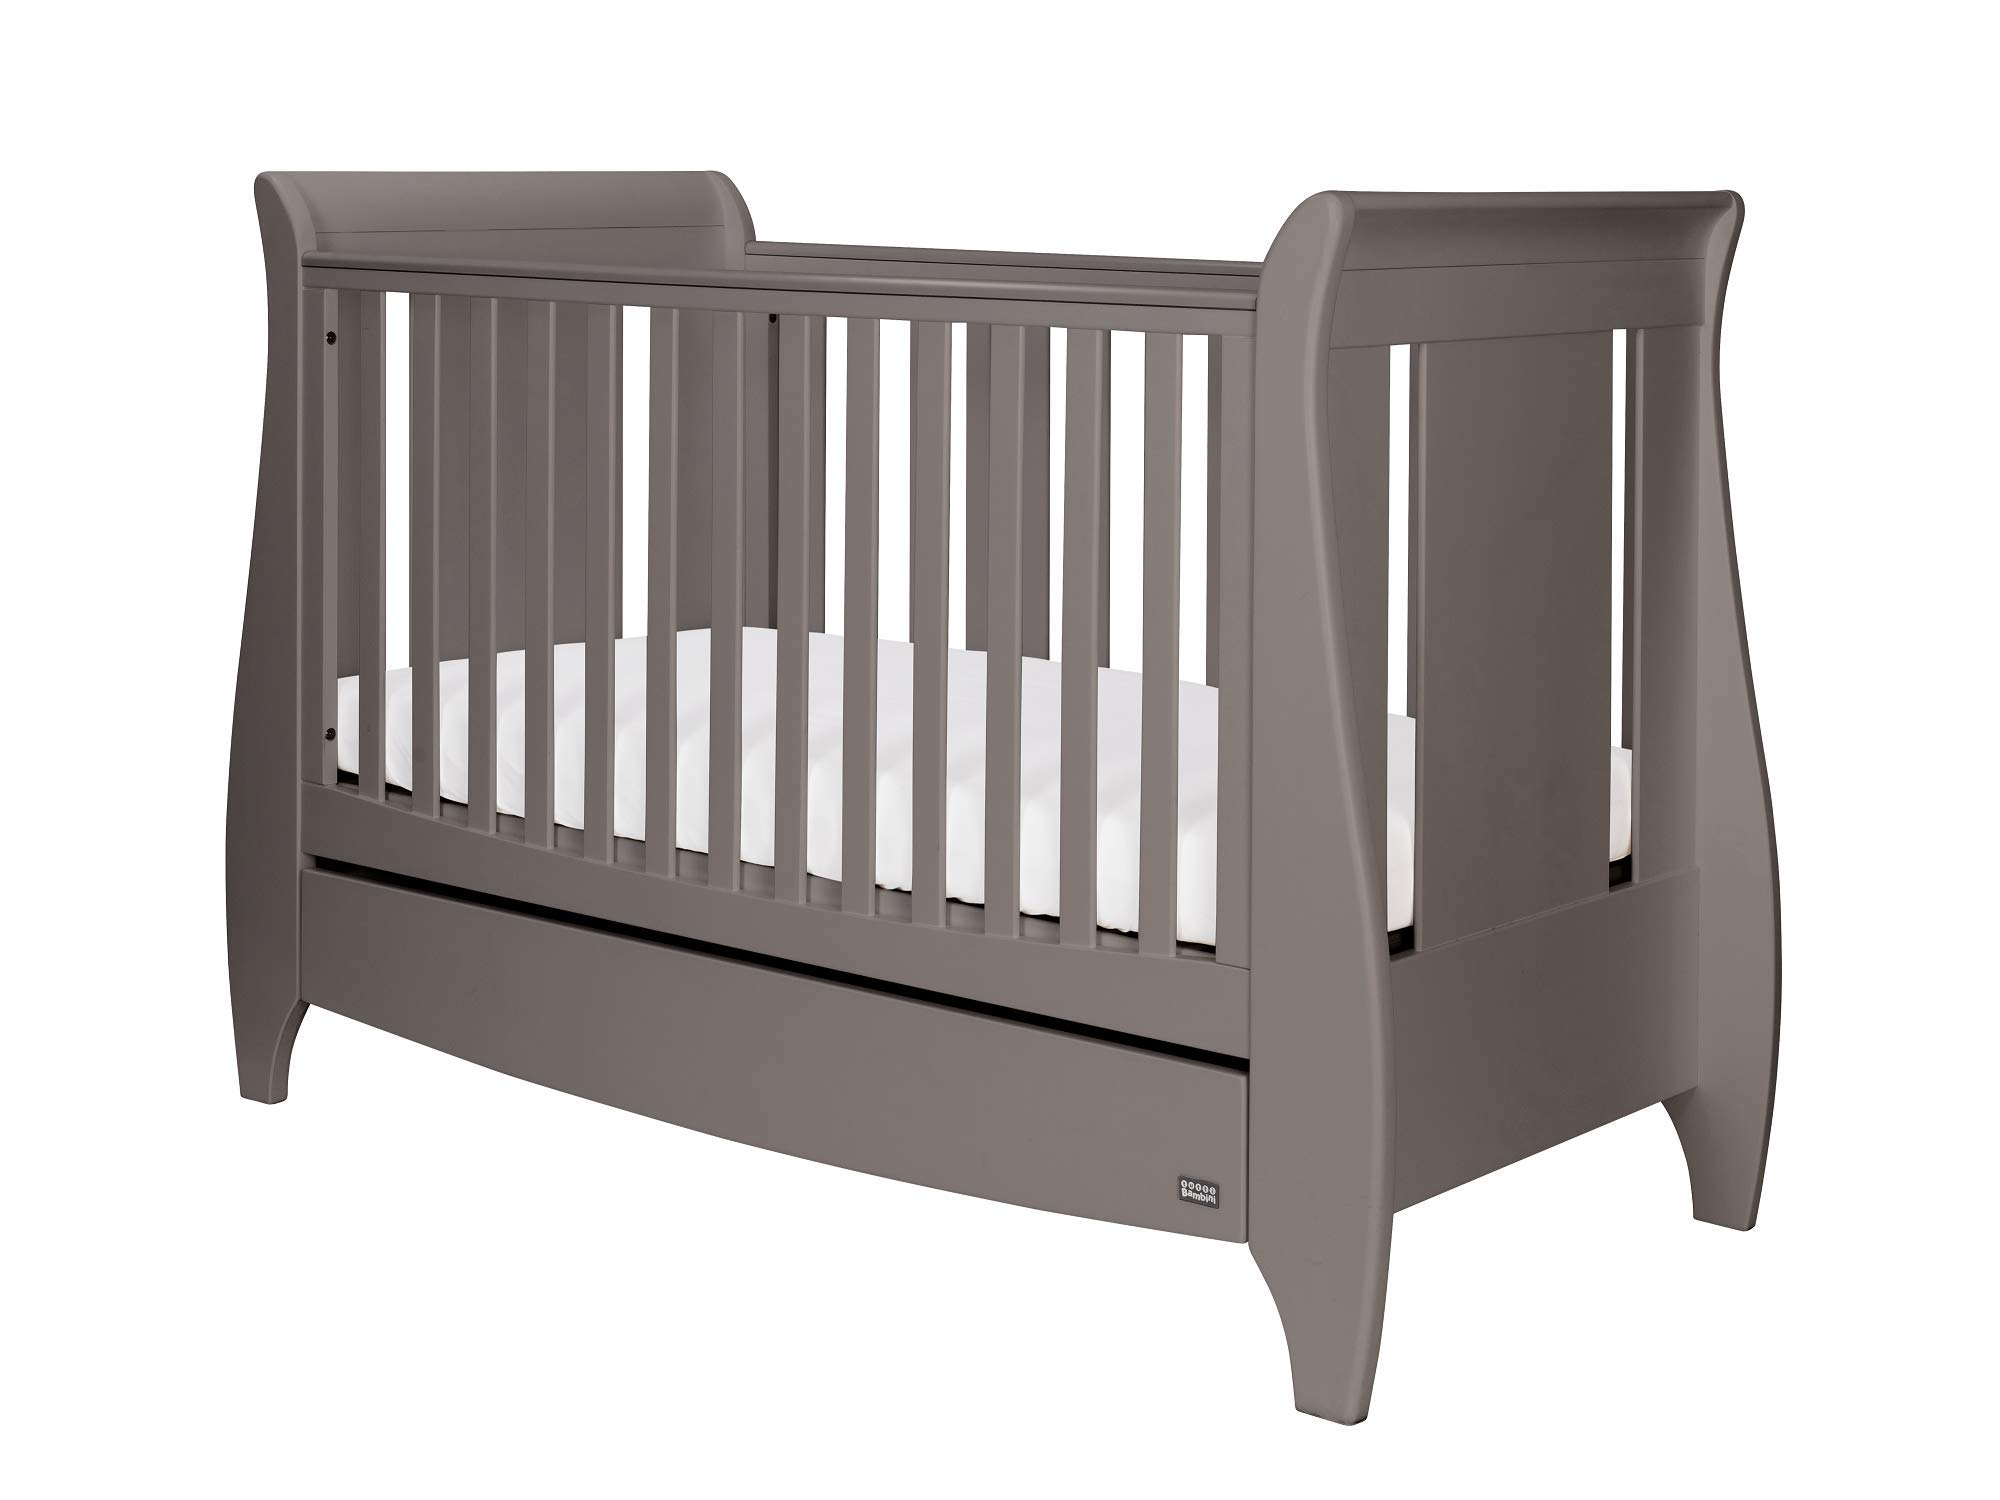 Tutti Bambini Lucas Space Saver Sleigh Cot Bed - with Under Bed Drawer, Additional Foam Mattress - Cool Grey